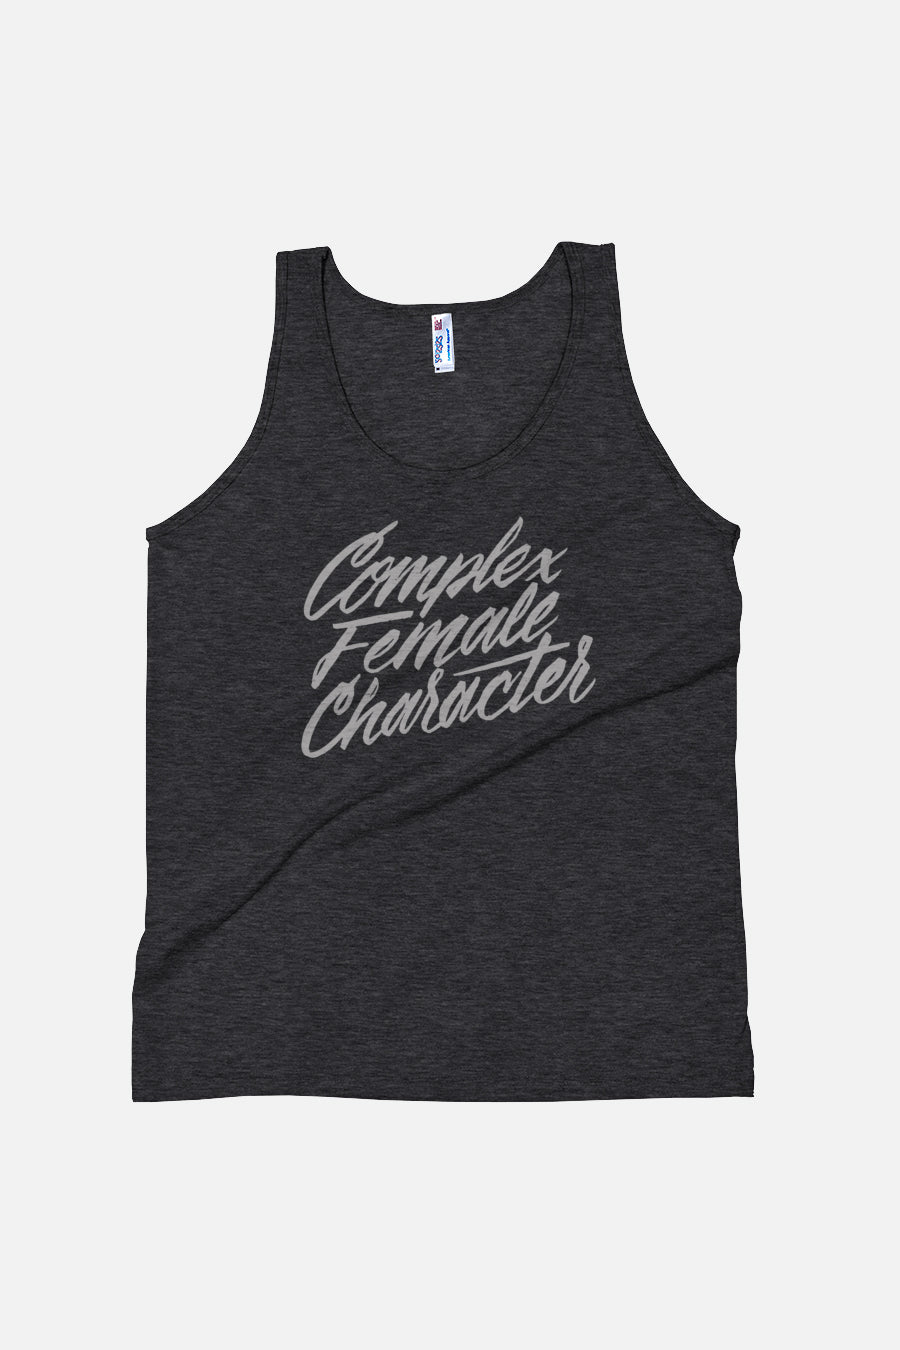 Complex Female Character Unisex Tank Top